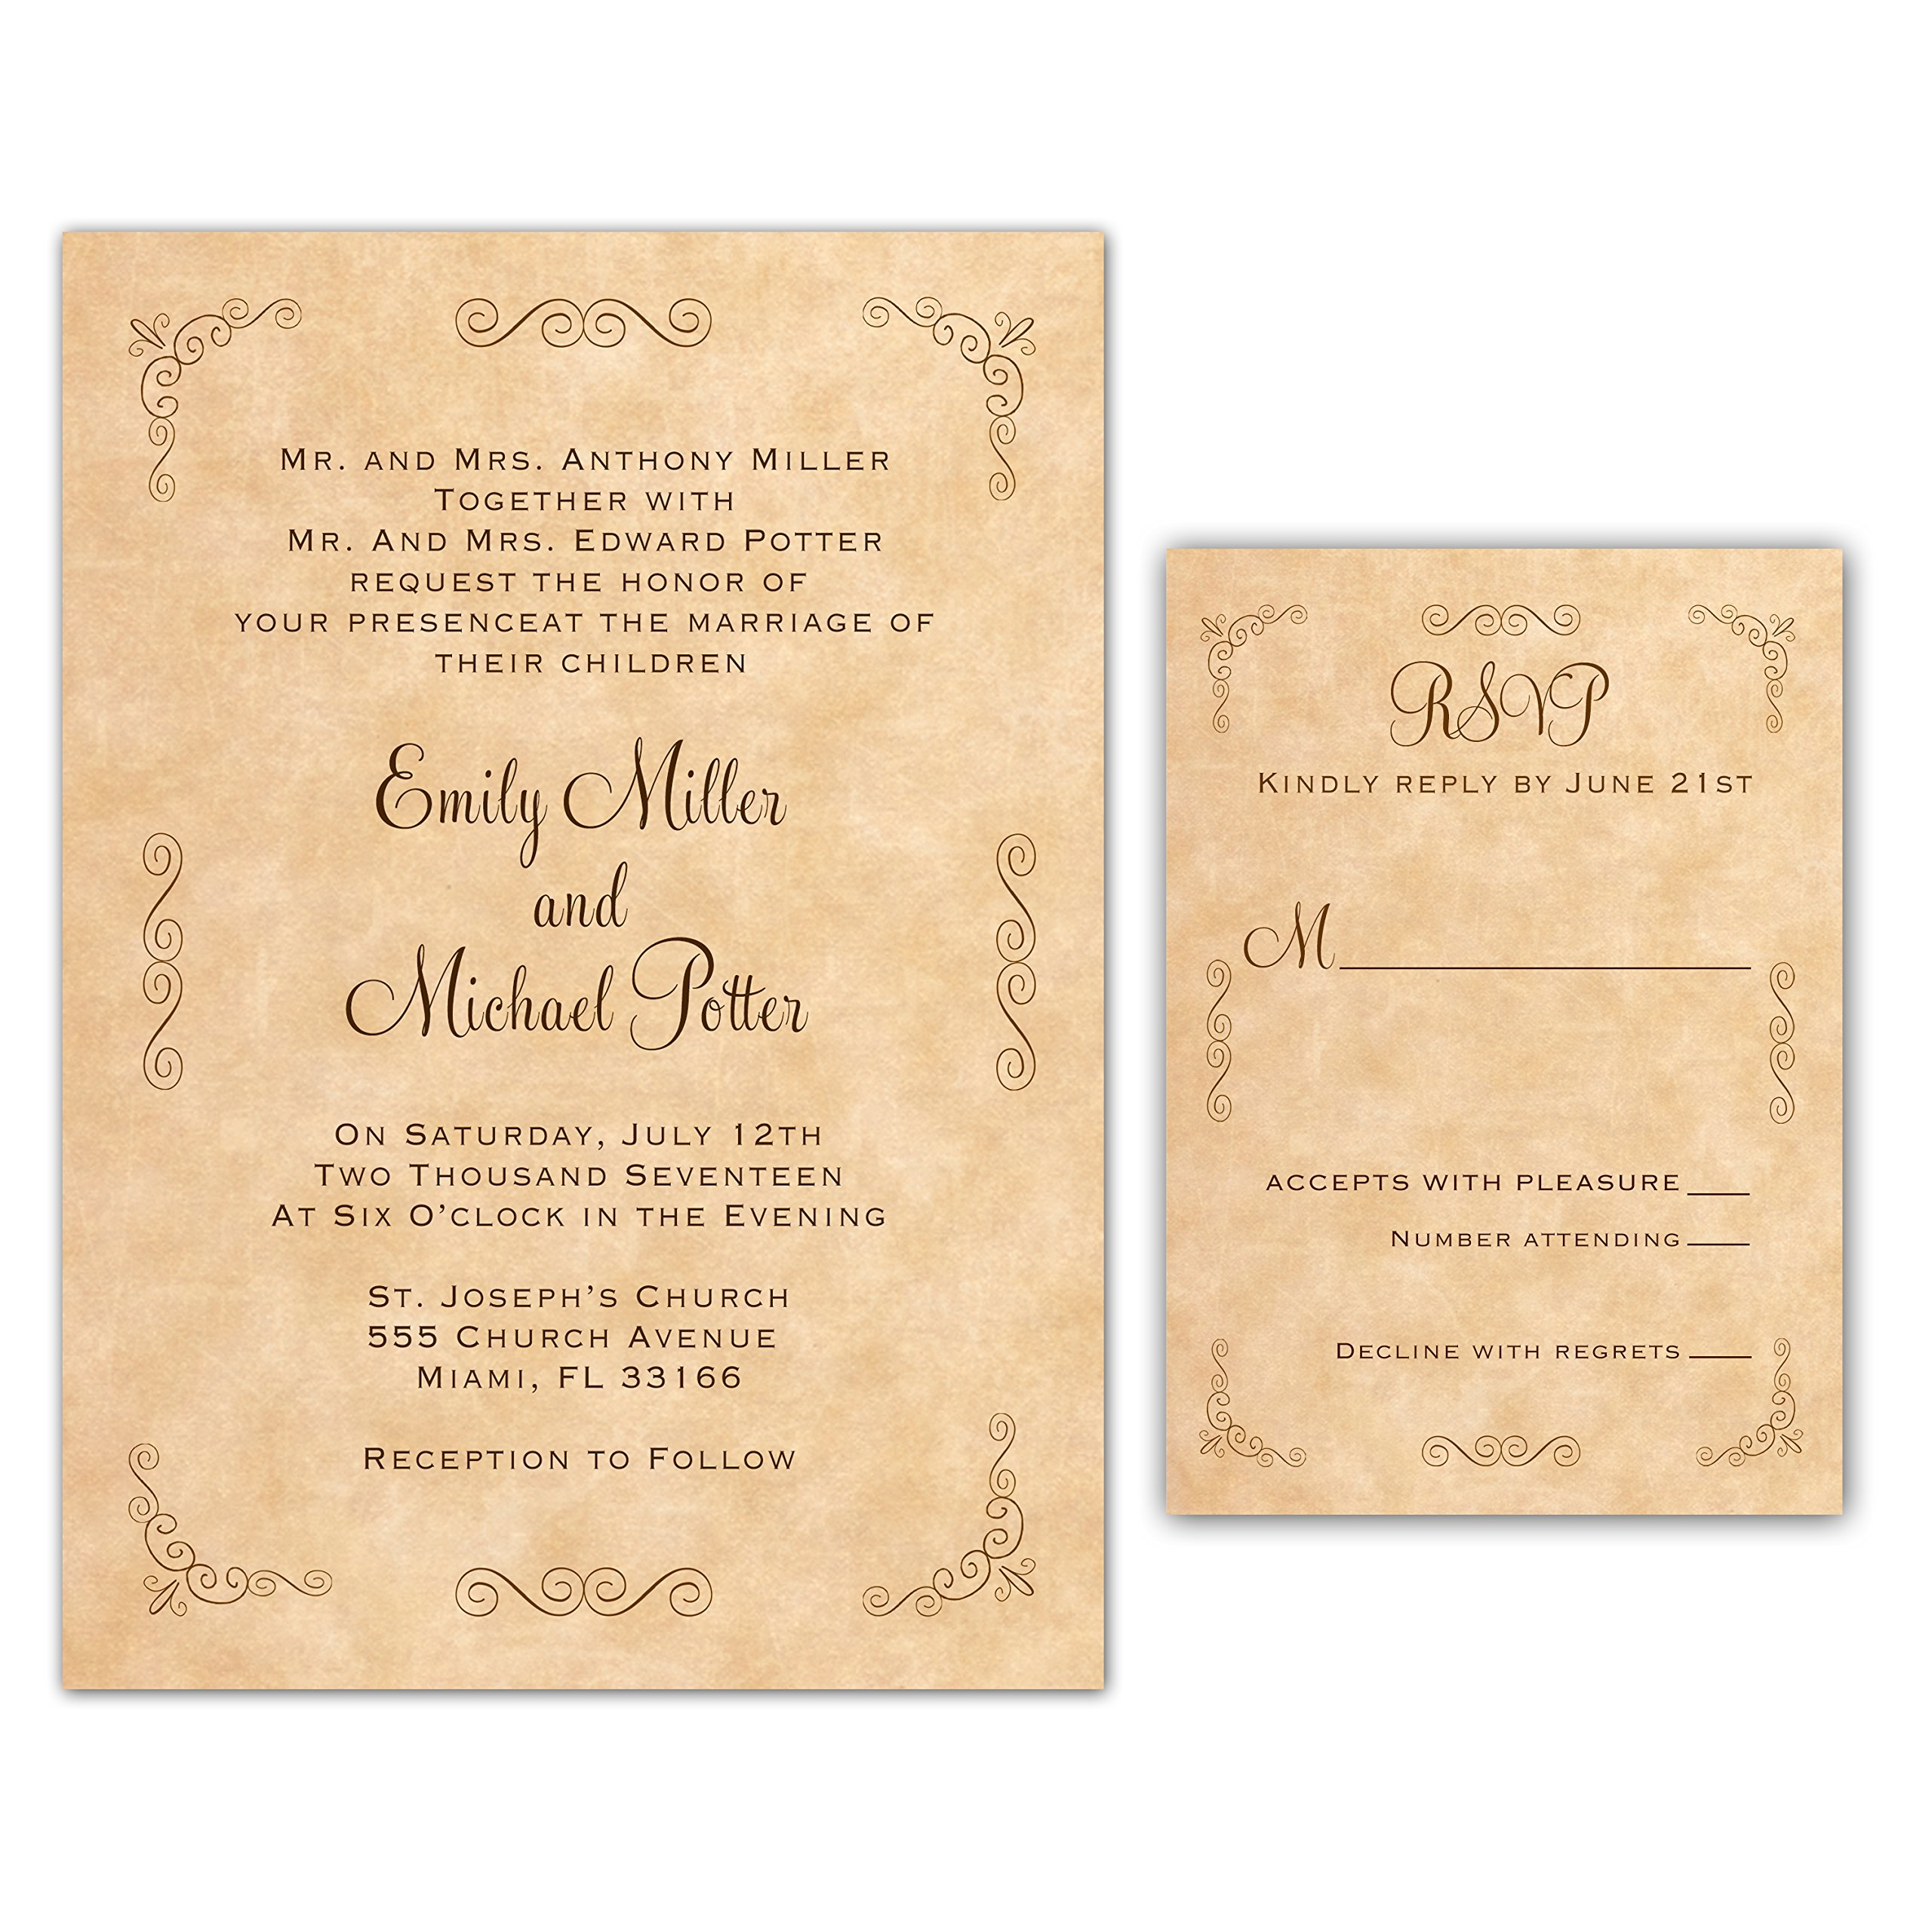 100 Wedding Invitations Rustic Country Style Vintage Design + Envelopes + Response Cards Set